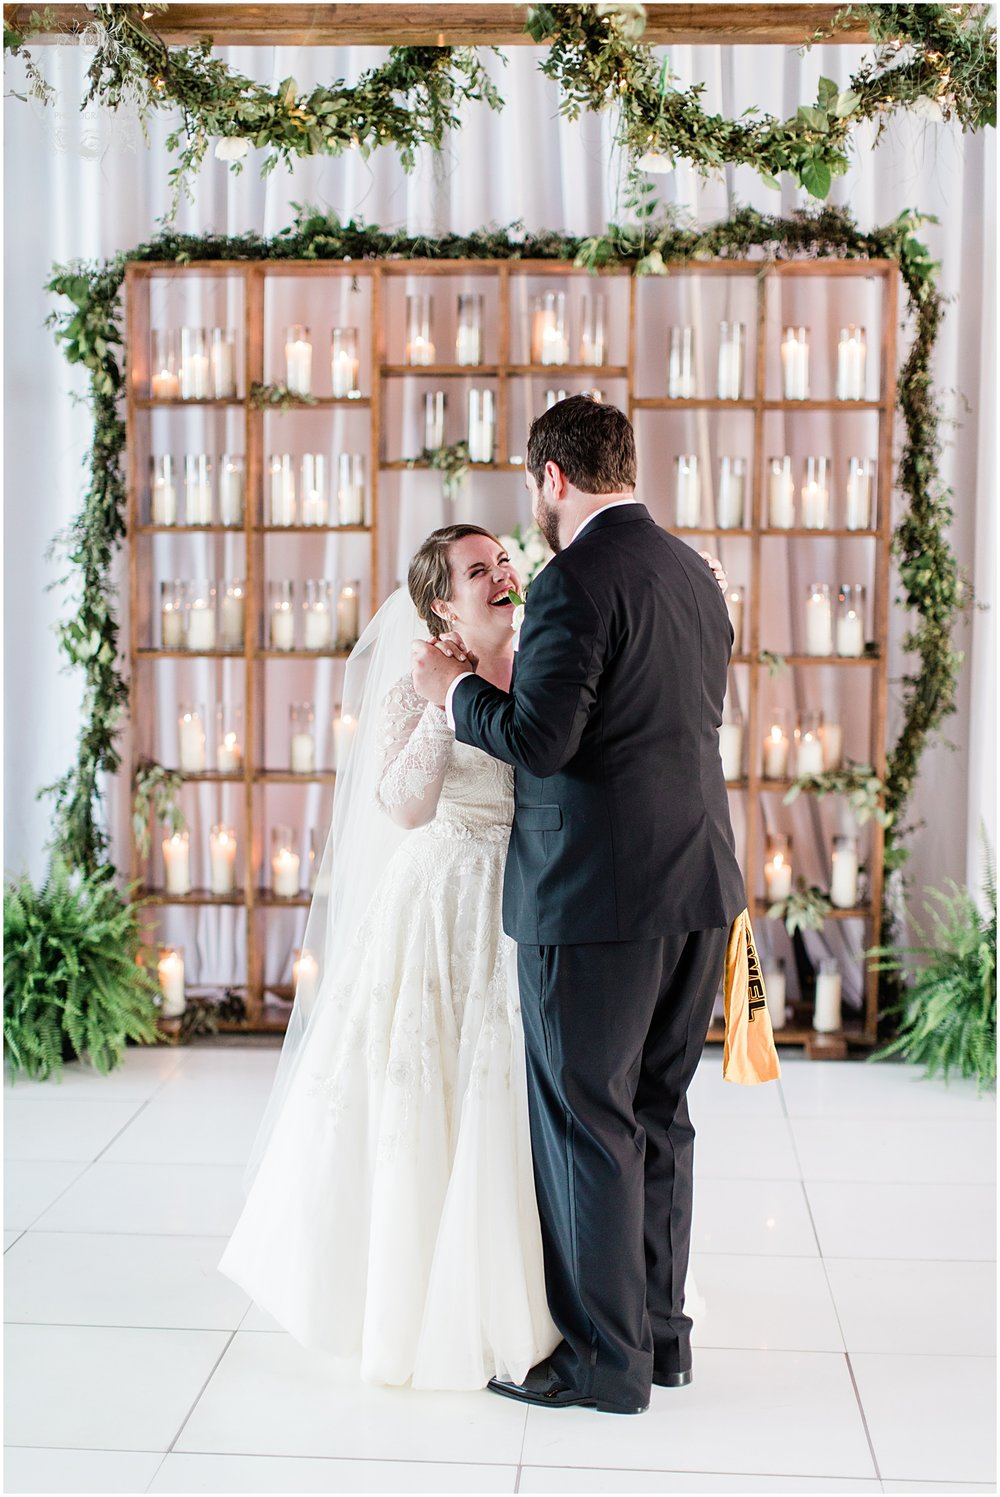 GORBY WEDDING | MARISSA CRIBBS PHOTOGRAPHY_5104.jpg